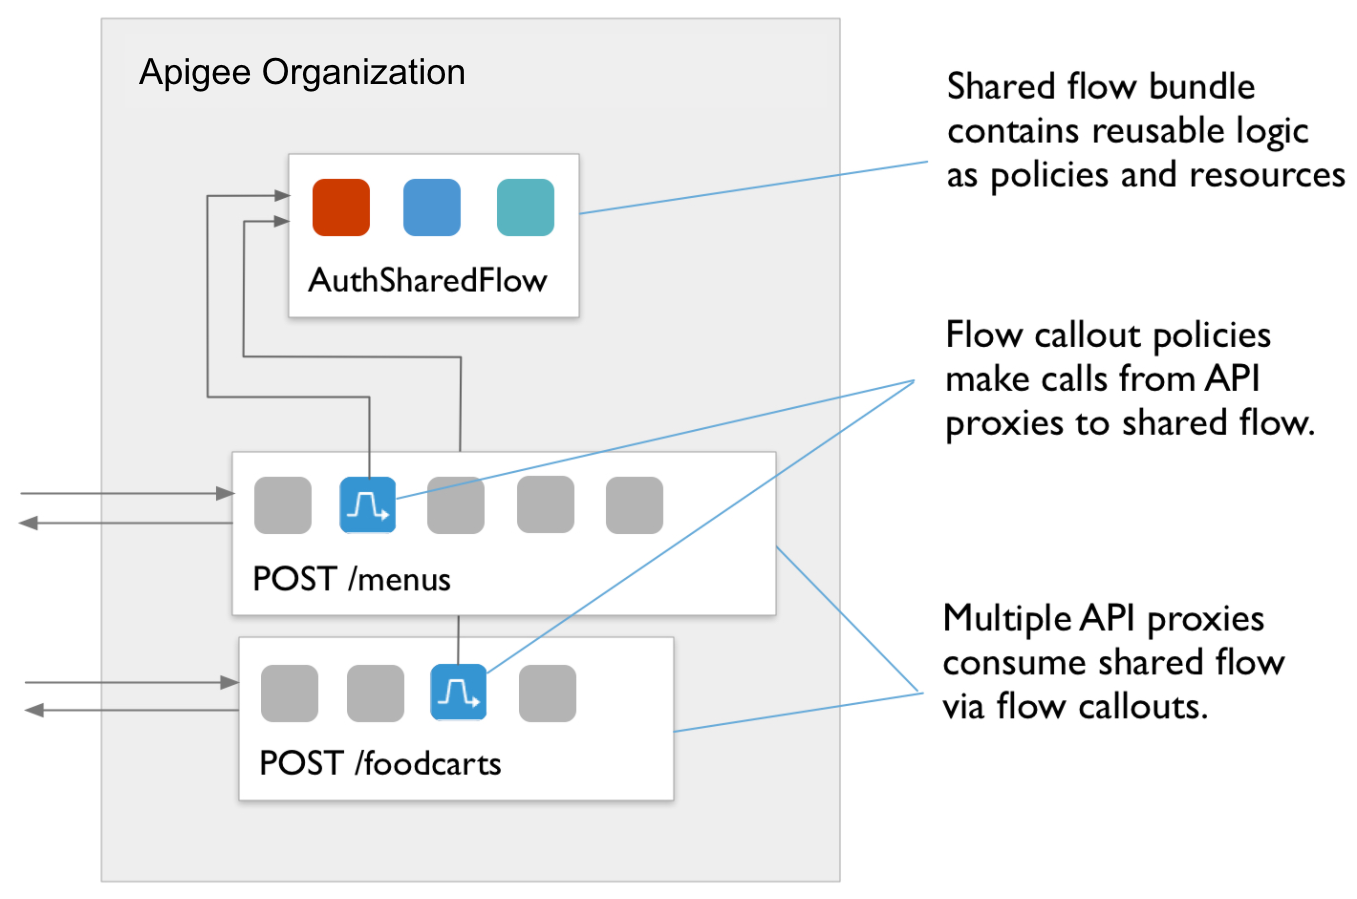 Flow diagram showing POST /foodcarts policy to POST /menus policy to AuthSharedFlow.            Callout text:           a) Multiple API proxies consume shared flow via FlowCallouts.            b)FlowCallout policies make calls from API proxies to shared flow.           c) Shared flow bundle contains reusable logic as policies and resources.